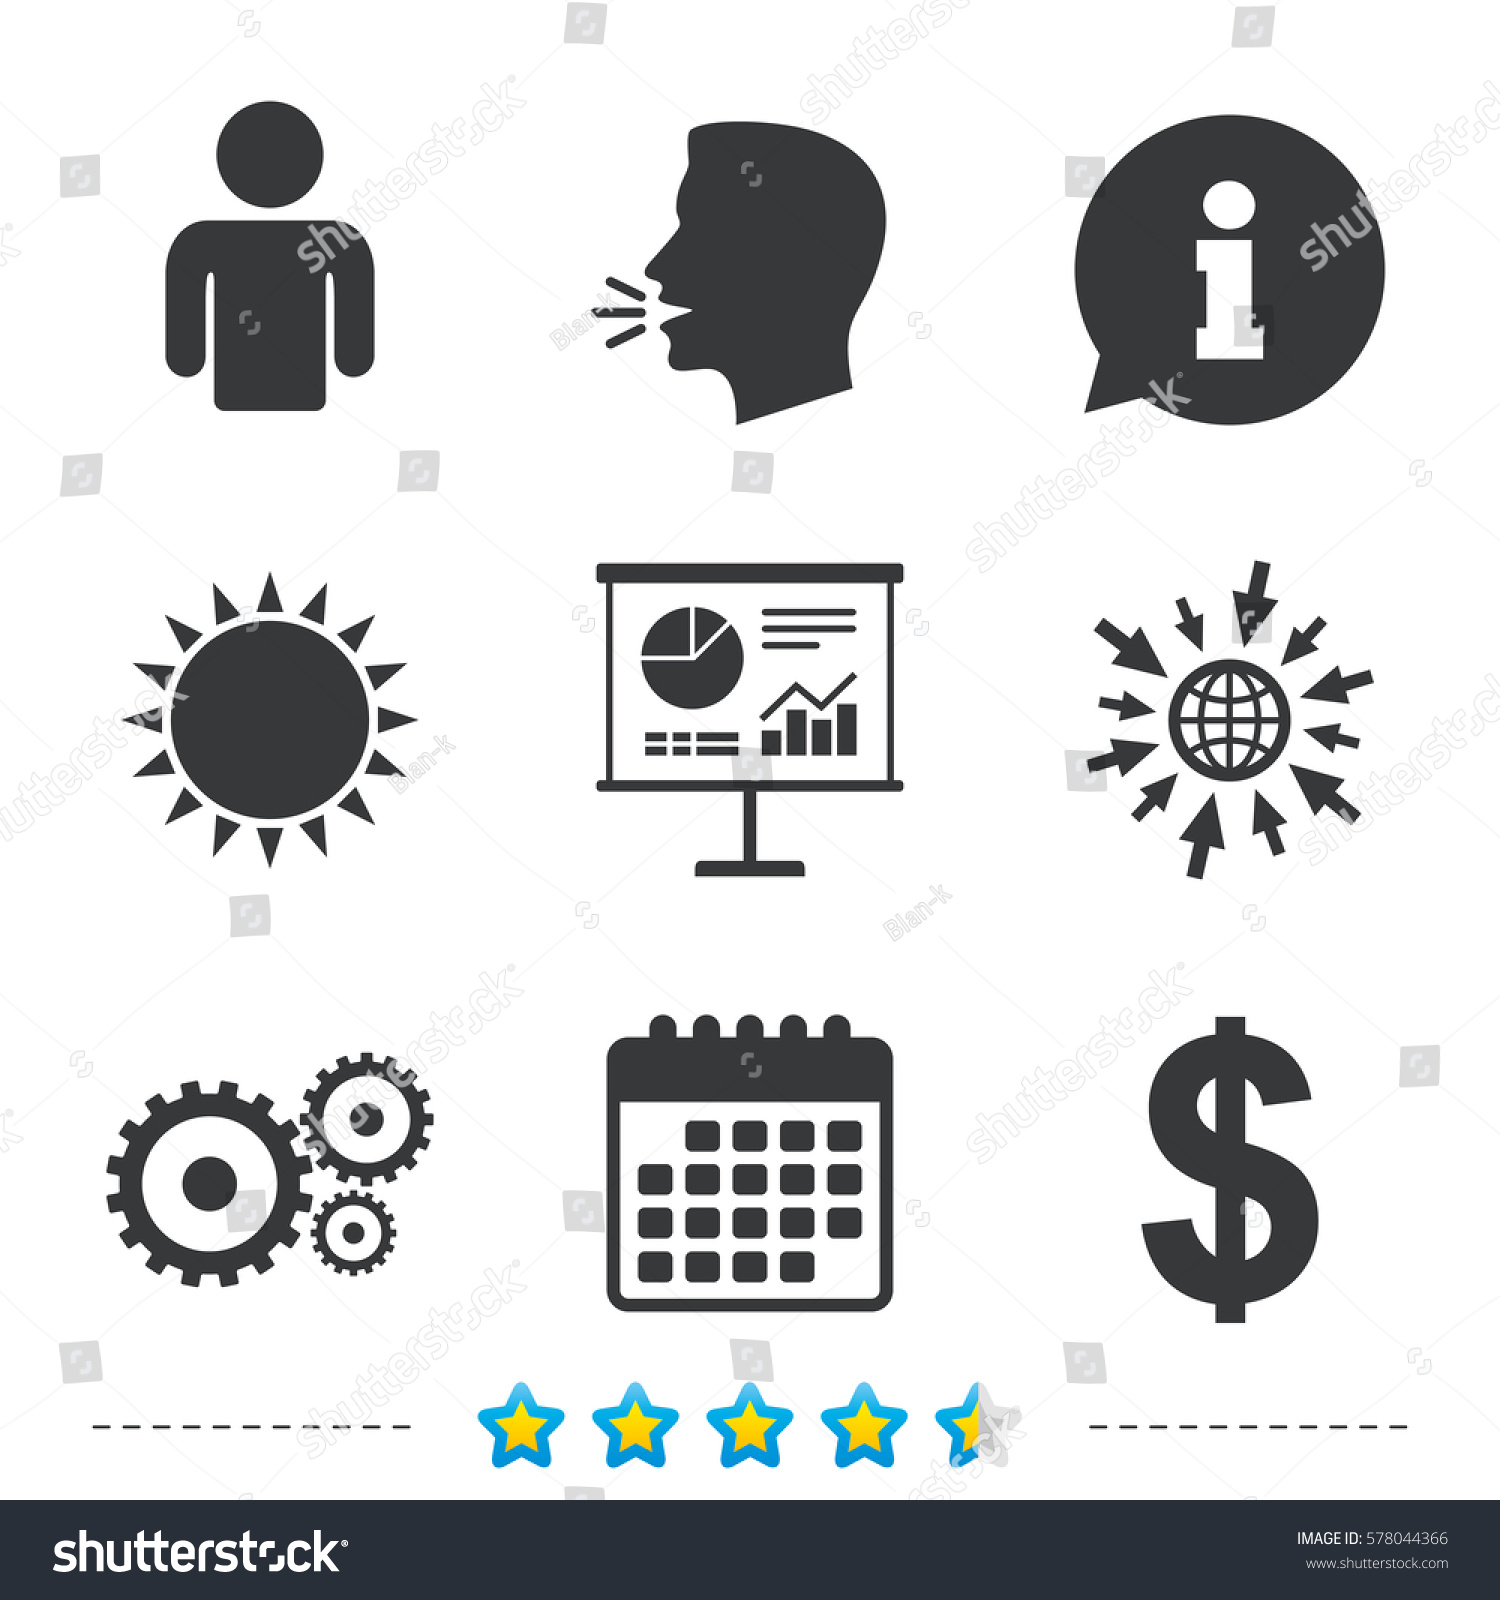 Business Icons Human Silhouette Presentation Board Stock Vector